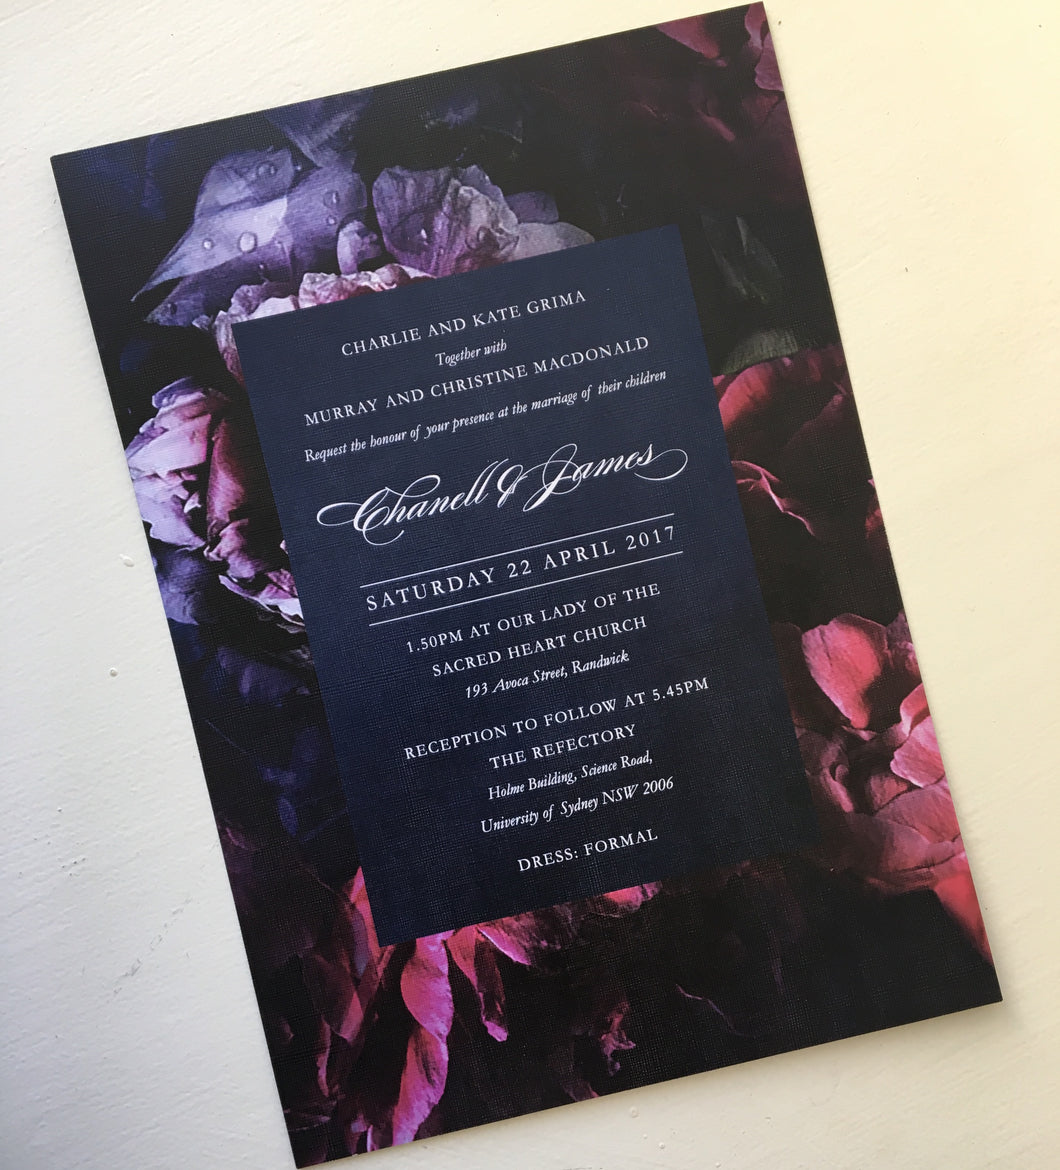 Chanell's Wedding Invitaitons